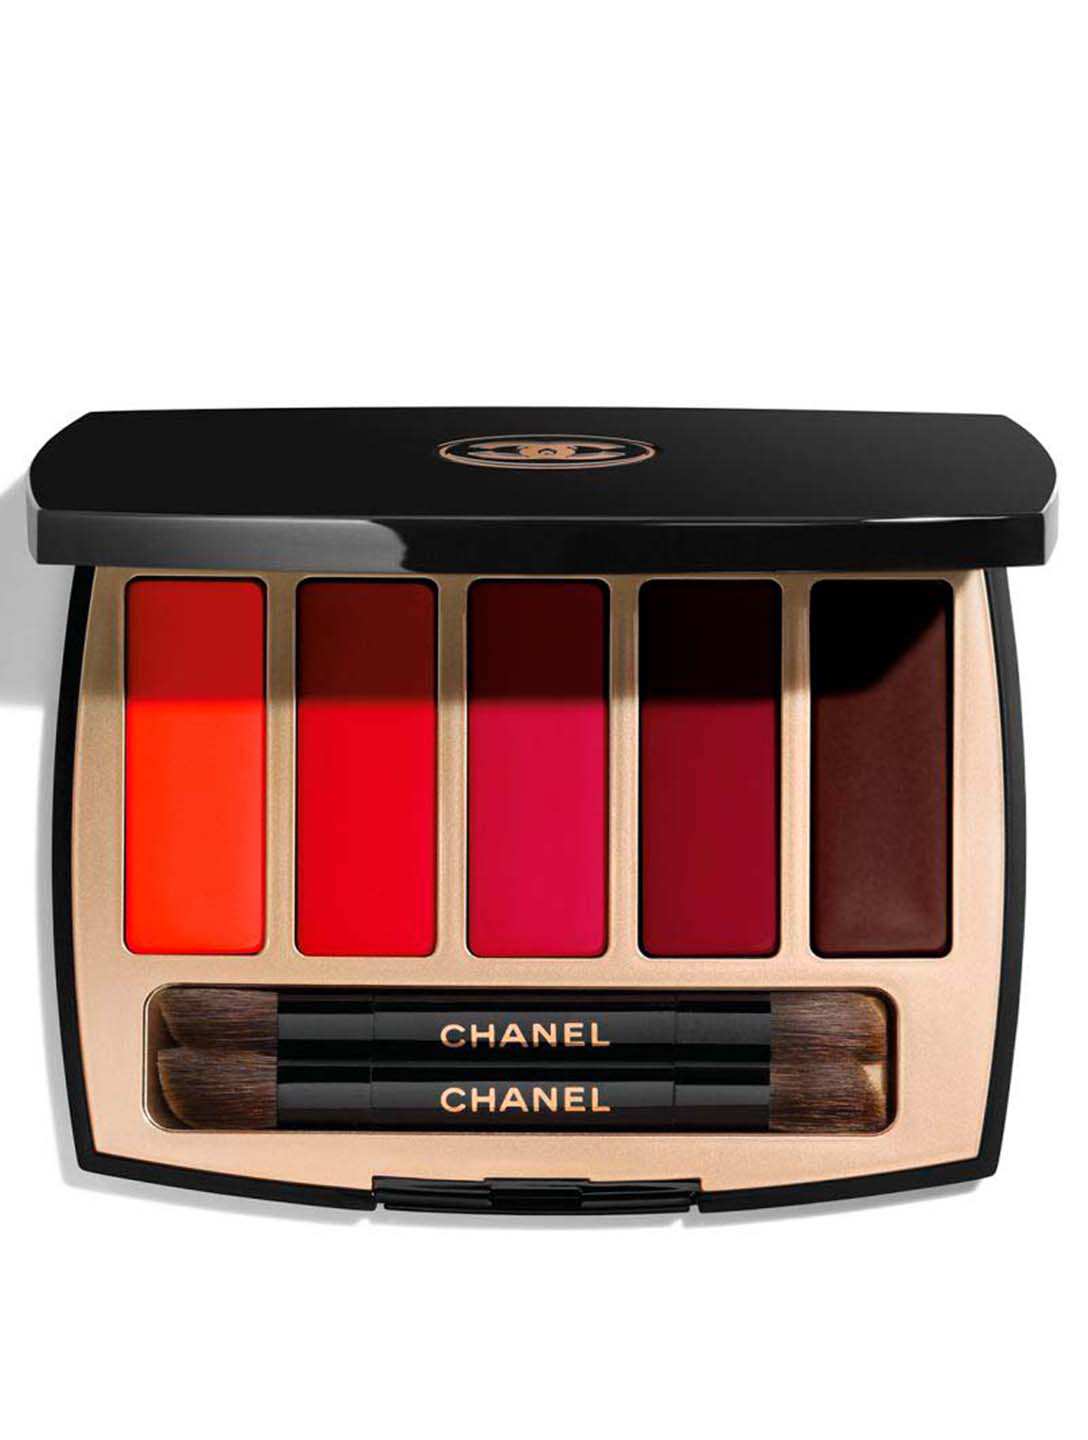 CHANEL Exclusive Creation Lipstick Palette CHANEL